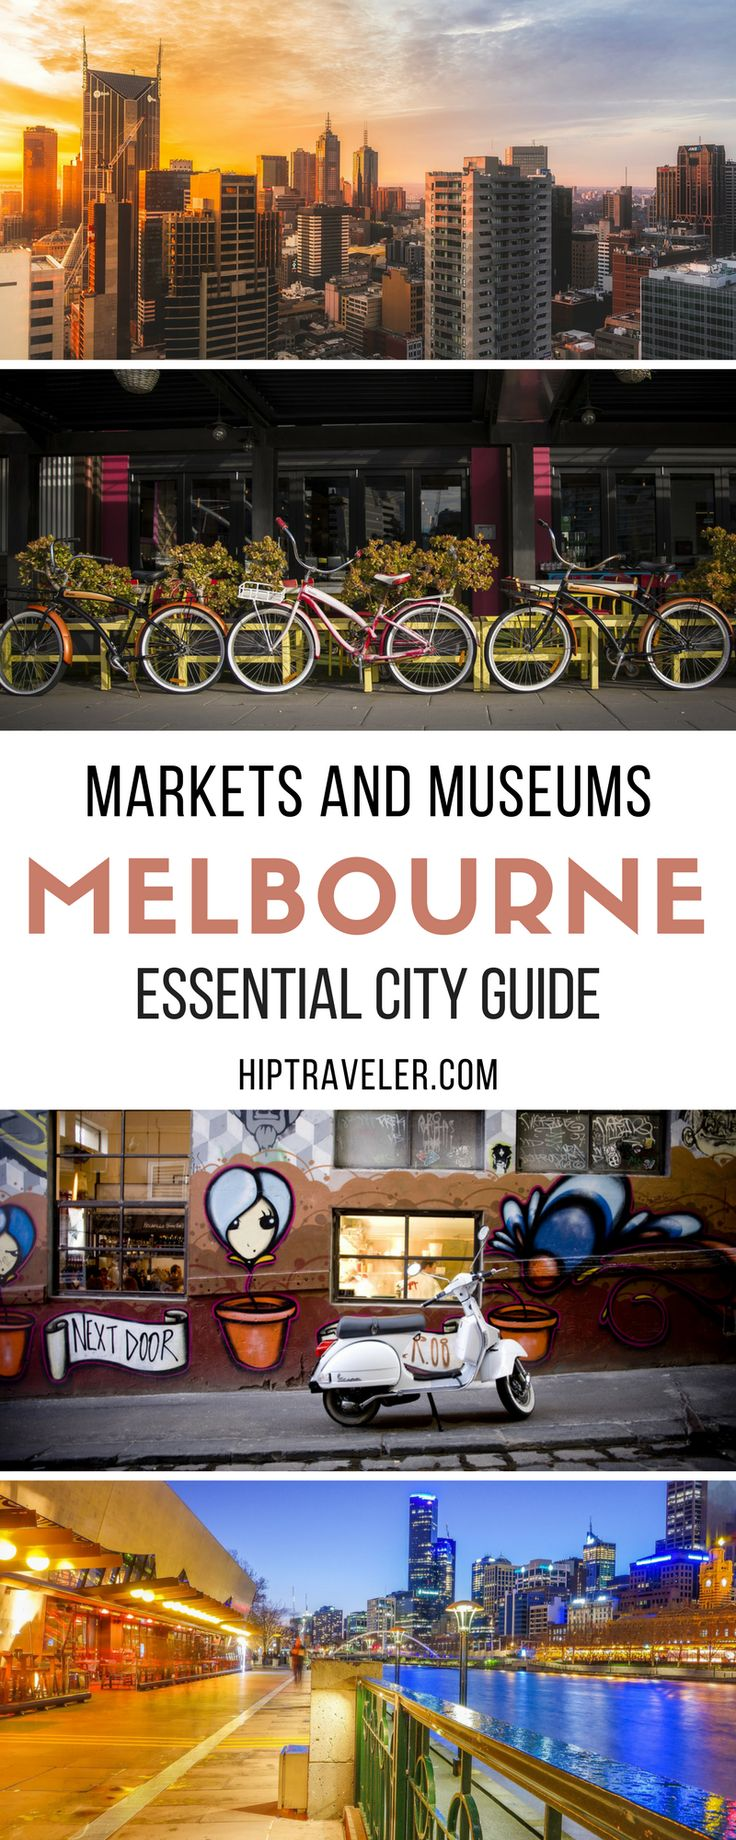 The essential guide to exploring Melbourne, Australia. Best things to do and see including markets, museums and gardens + top day trips from the city.   Blog by HipTraveler #Melbourne #Australia